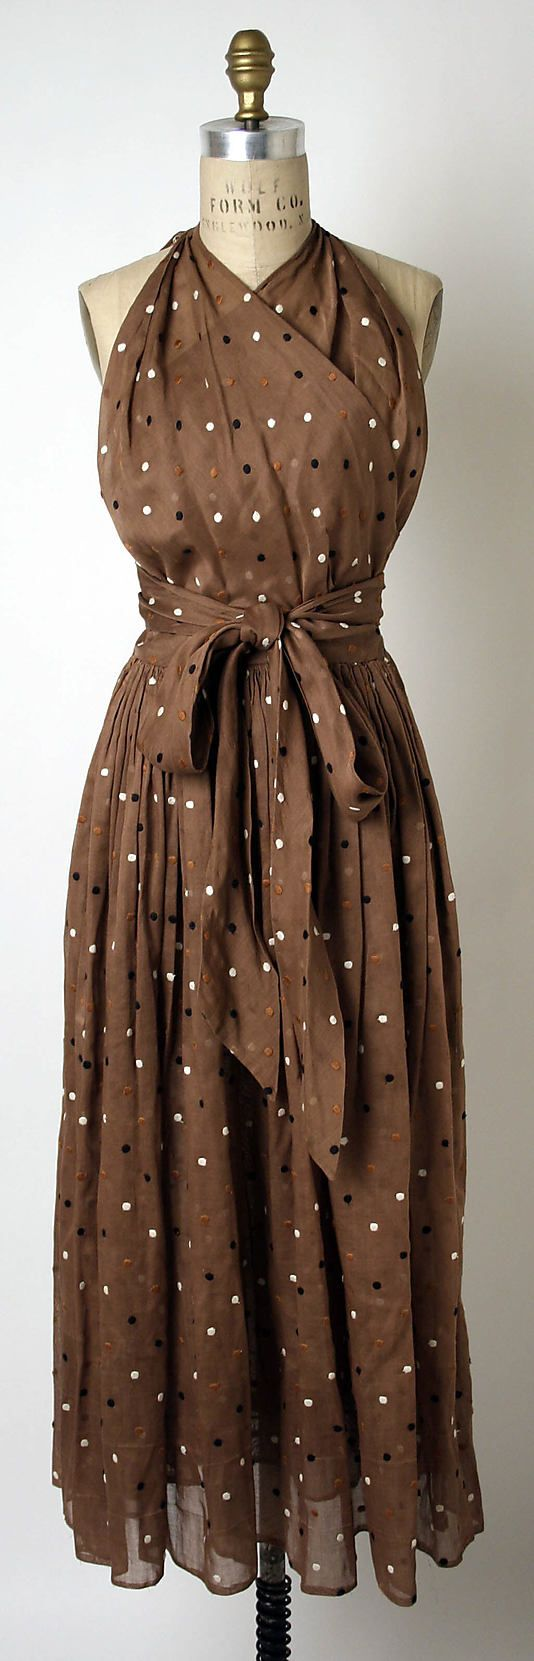 I'd wear this. Dress - c. 1948 - by Claire McCardell (American, 1905-1958) - Manufacturer: Townley Frocks (American) - Cotton, silk